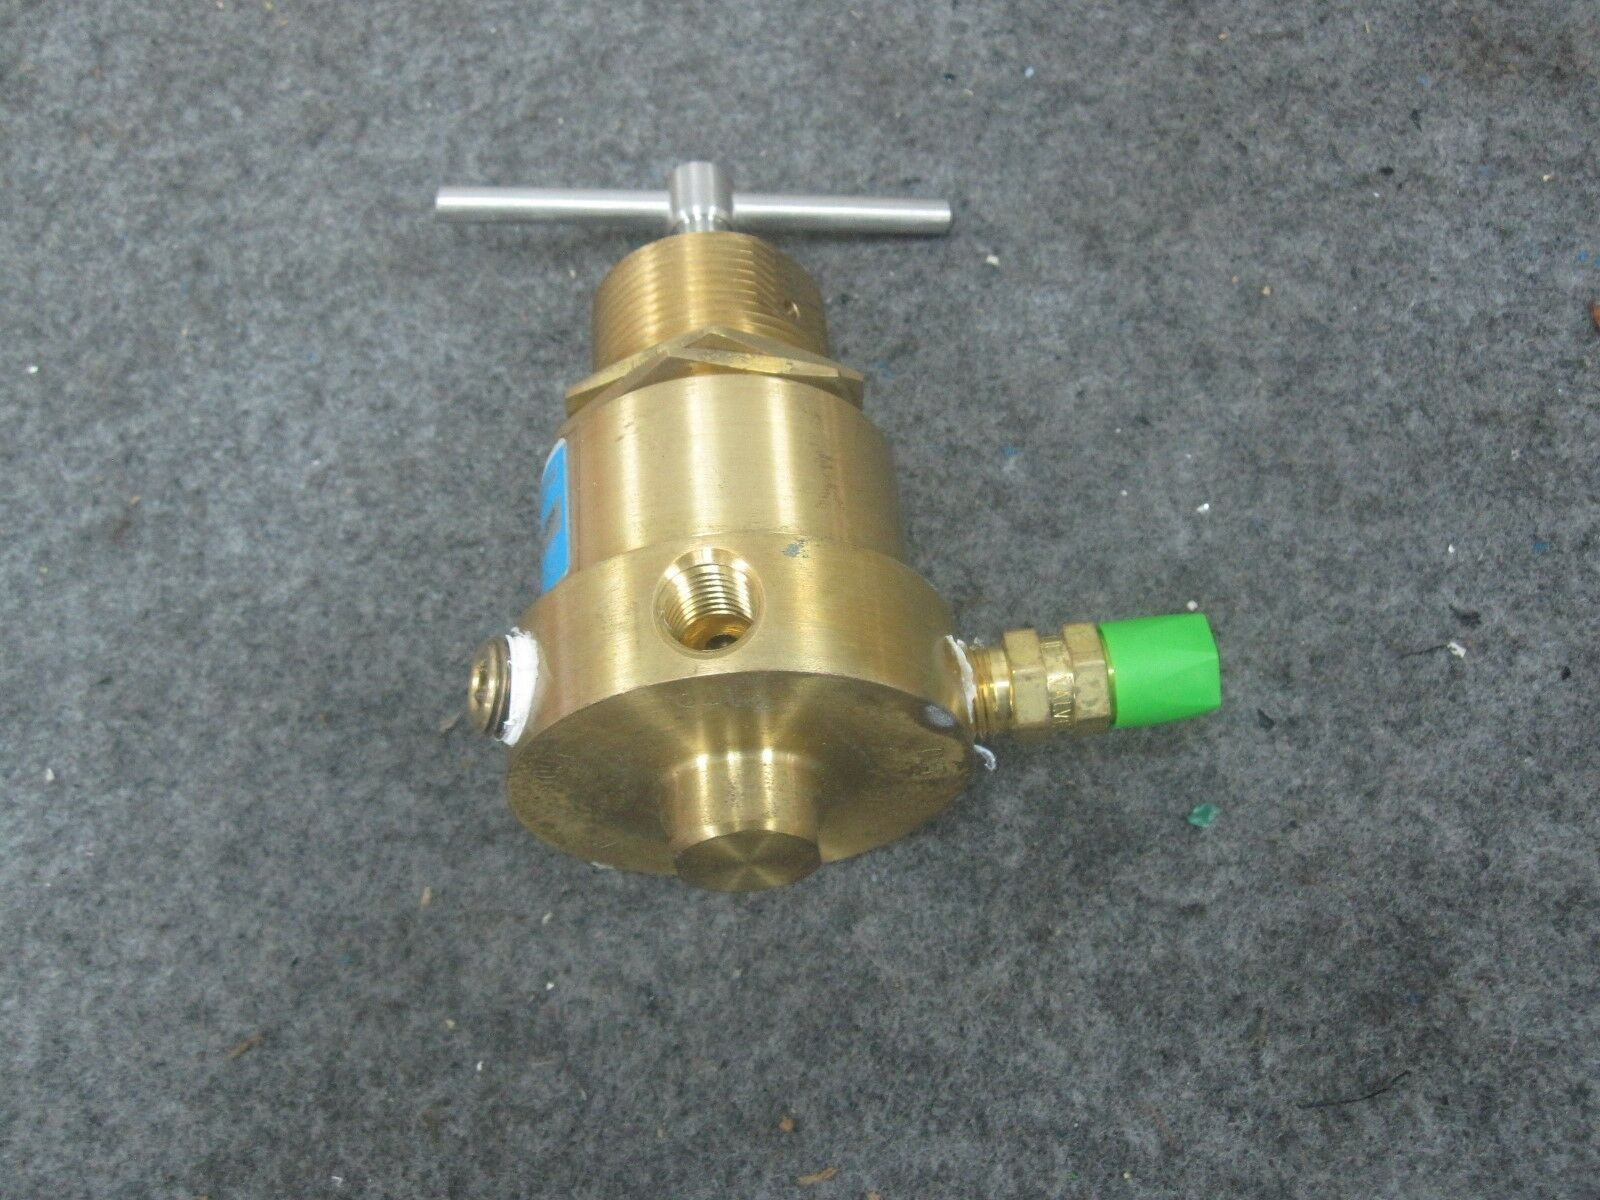 PR3251-289 AUTOFLOW FLUID PRESSURE REGULATING VALVE